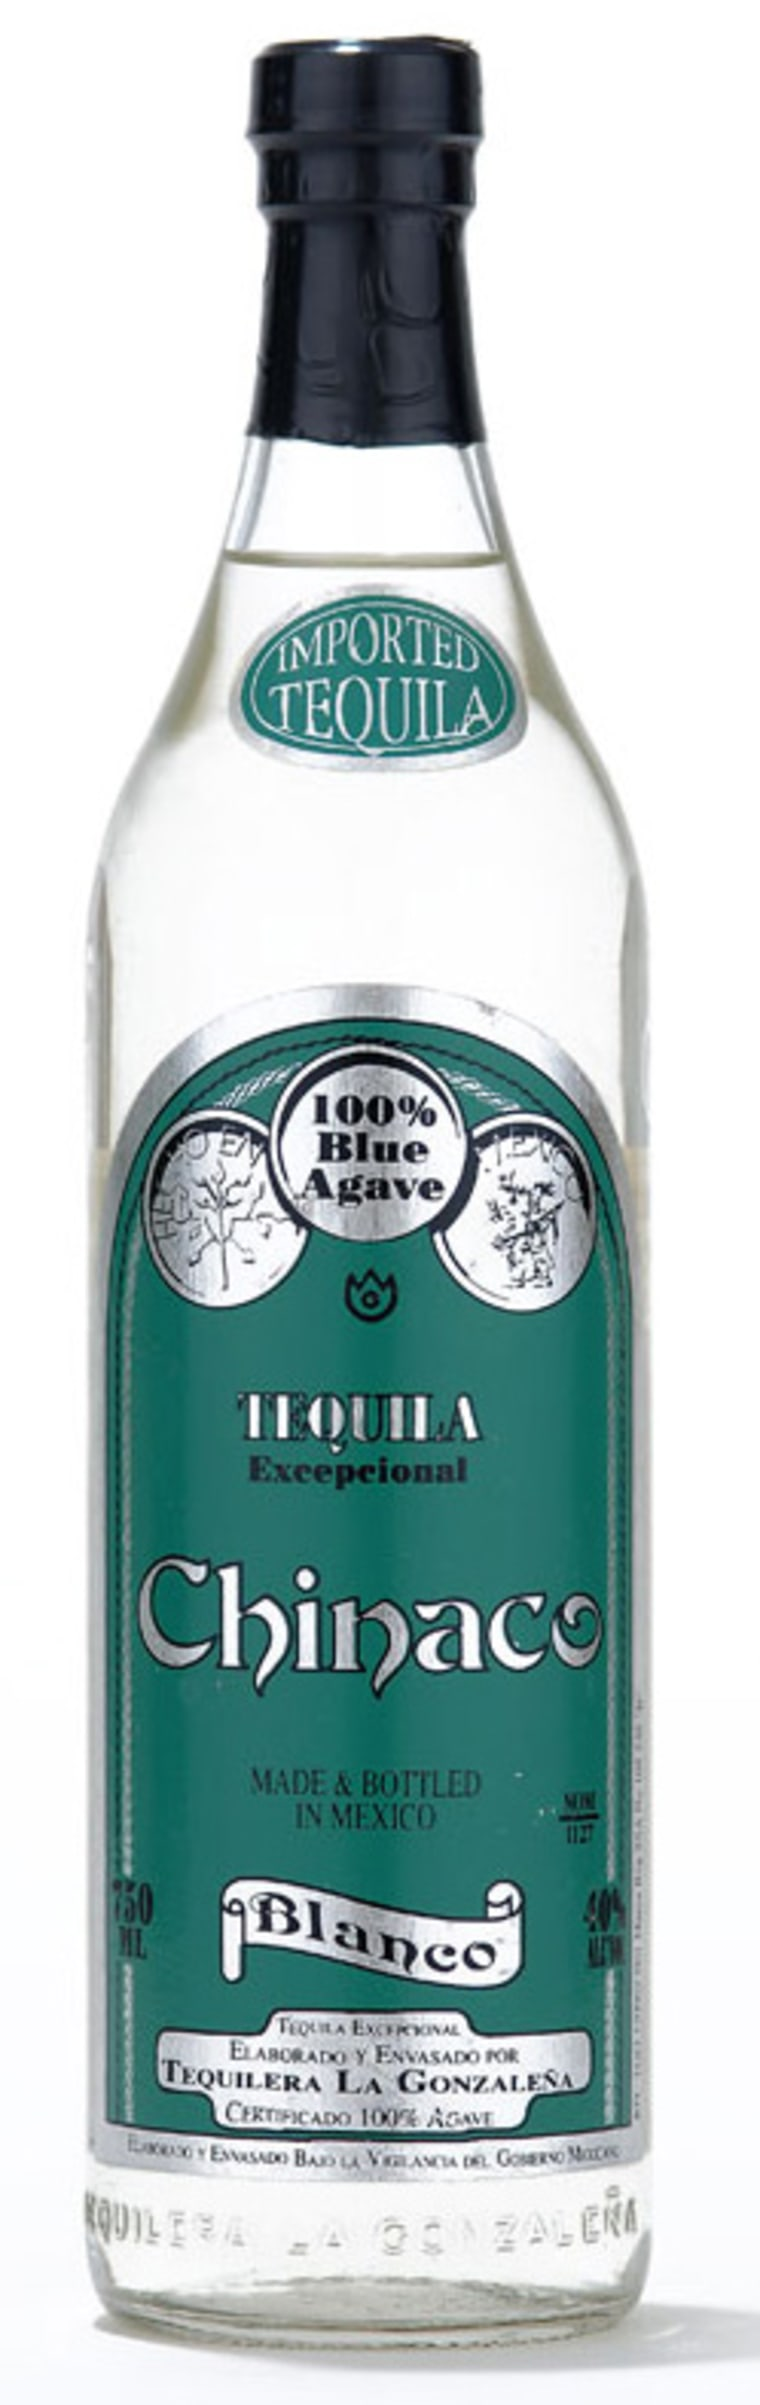 Image: Chinaco tequila